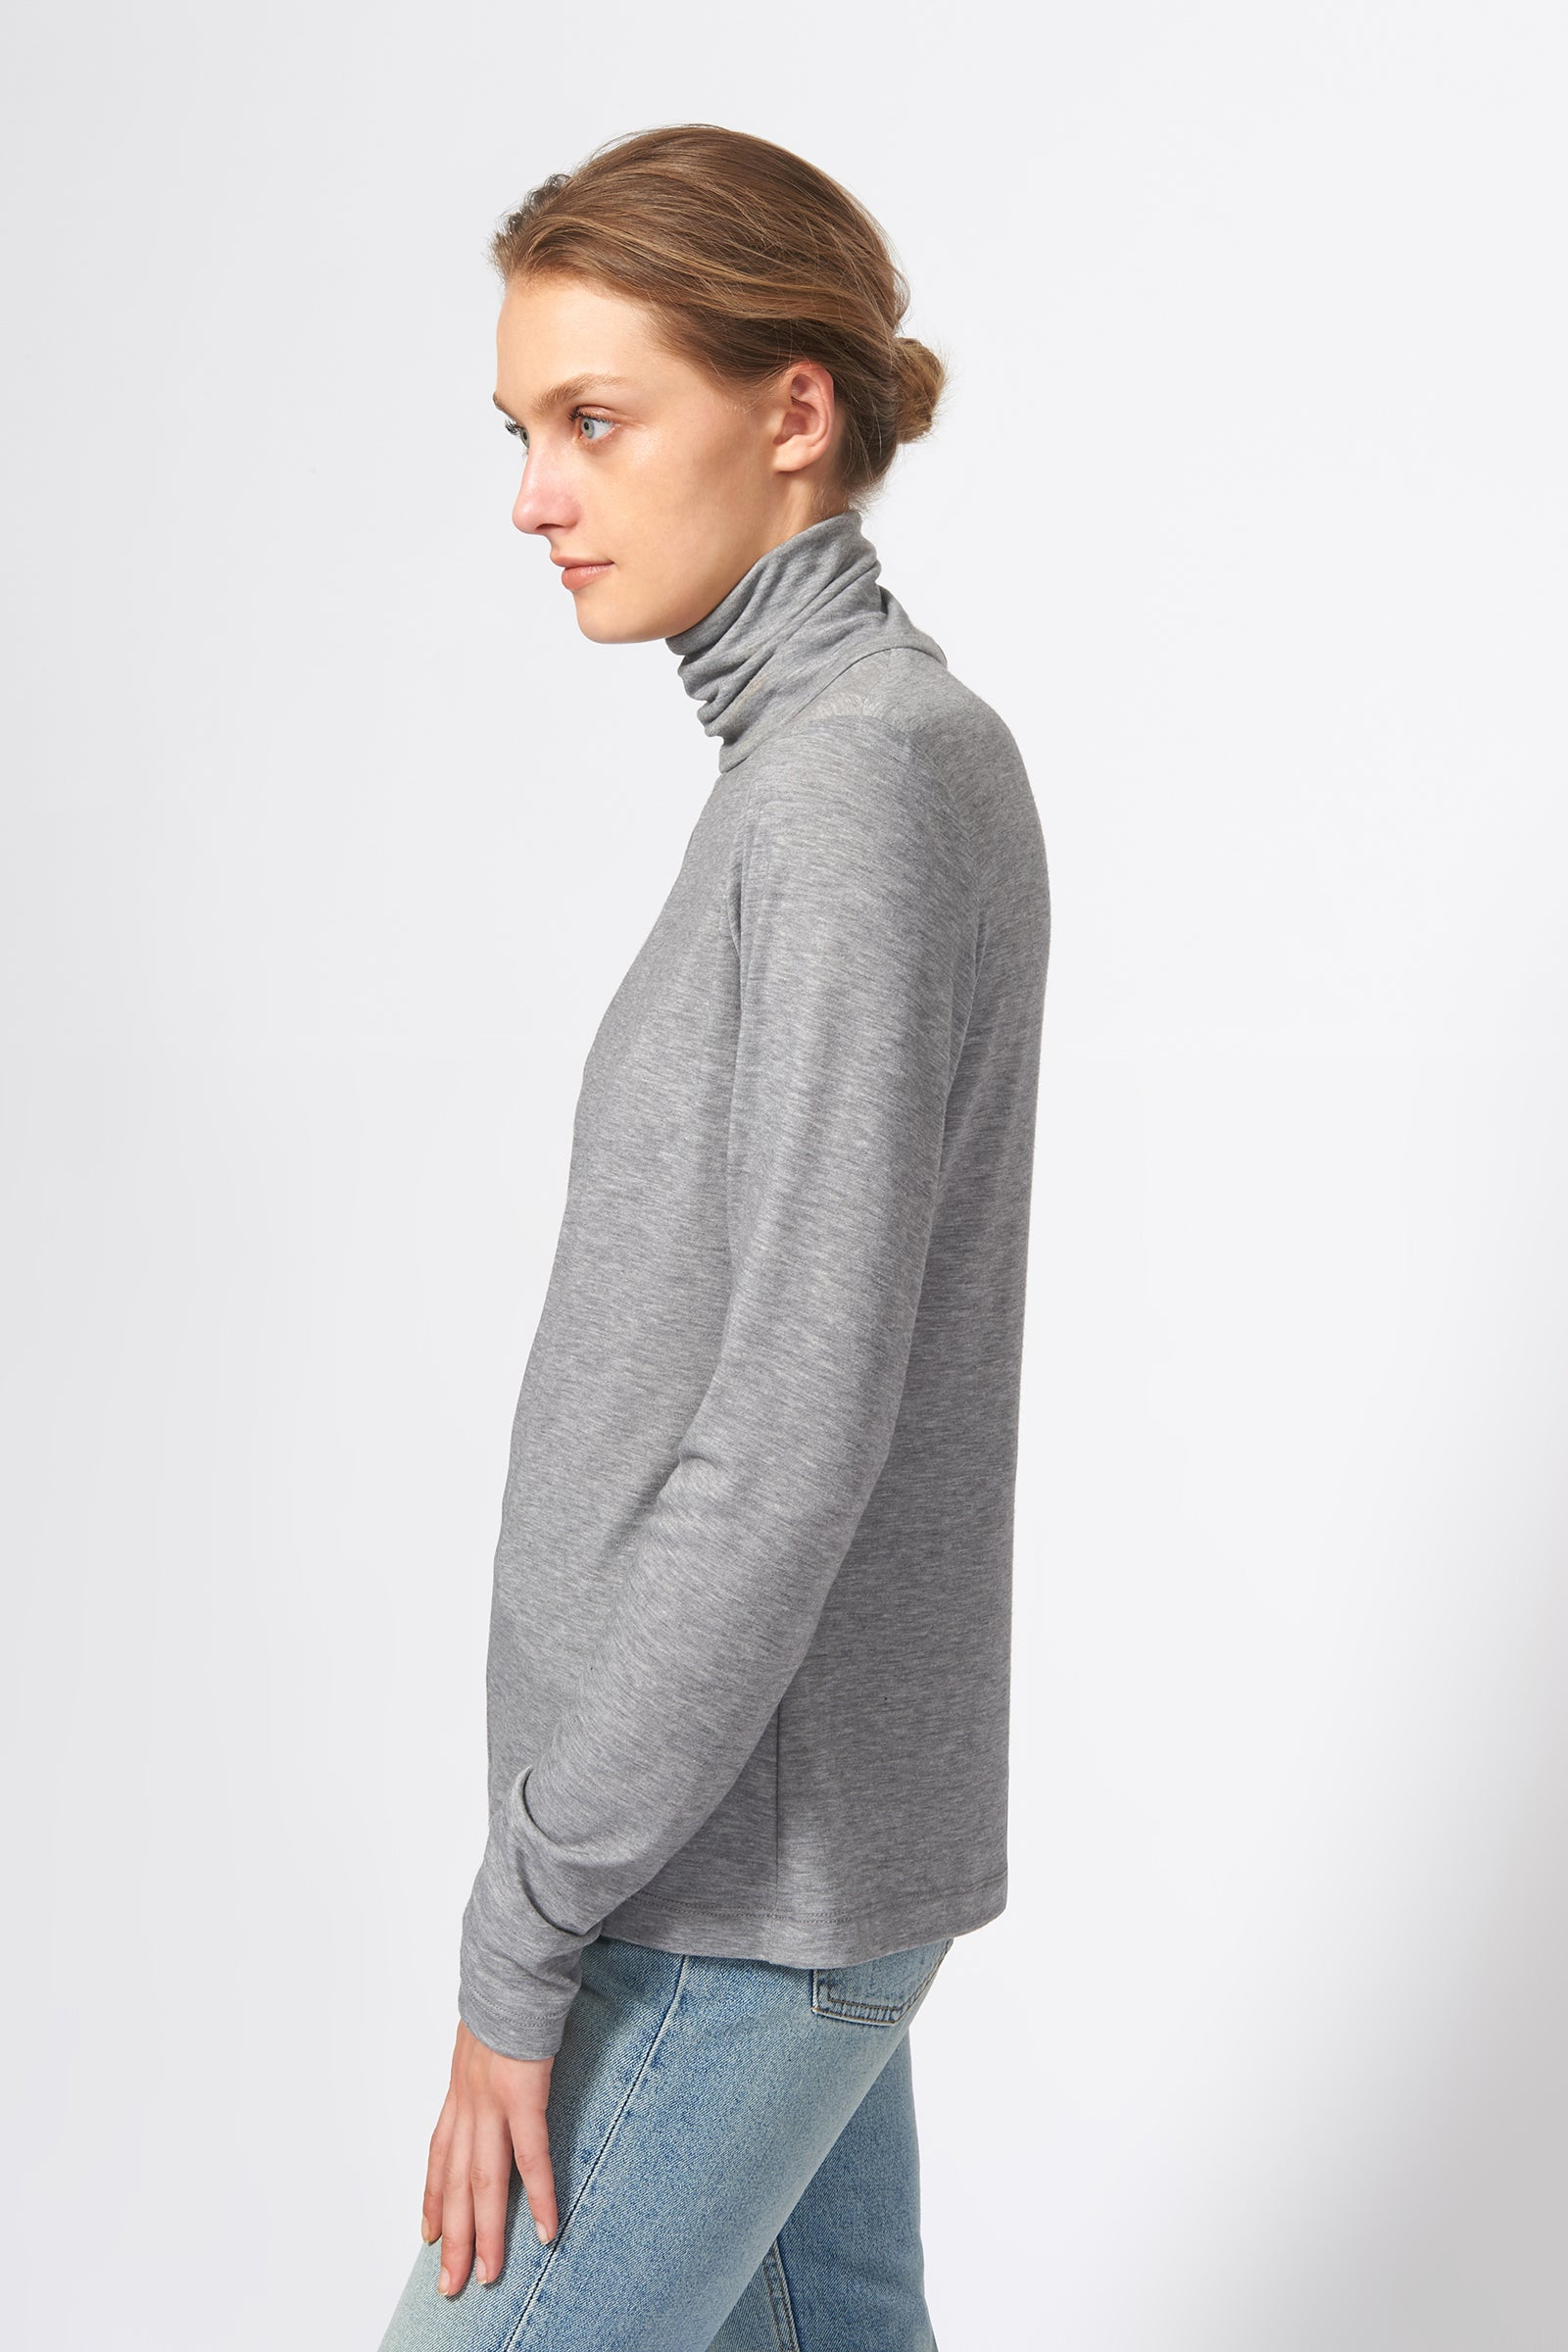 Kal Rieman Seamed Turtleneck in Grey on Model Side View